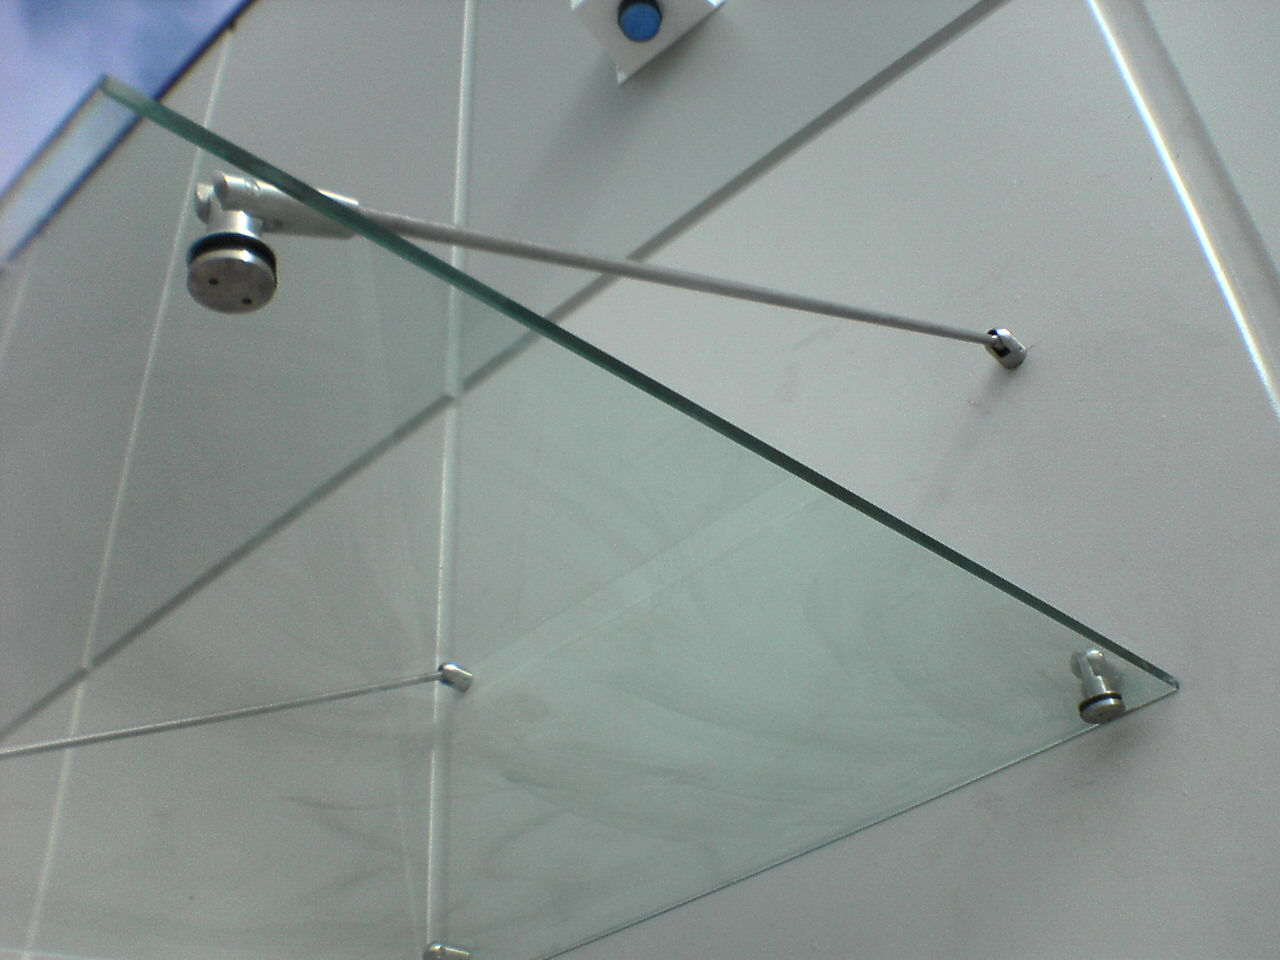 Detail of stainless steel fittings and clear glass · Commercial Canopy & Trinity Steel Canopies - Trinity Steel